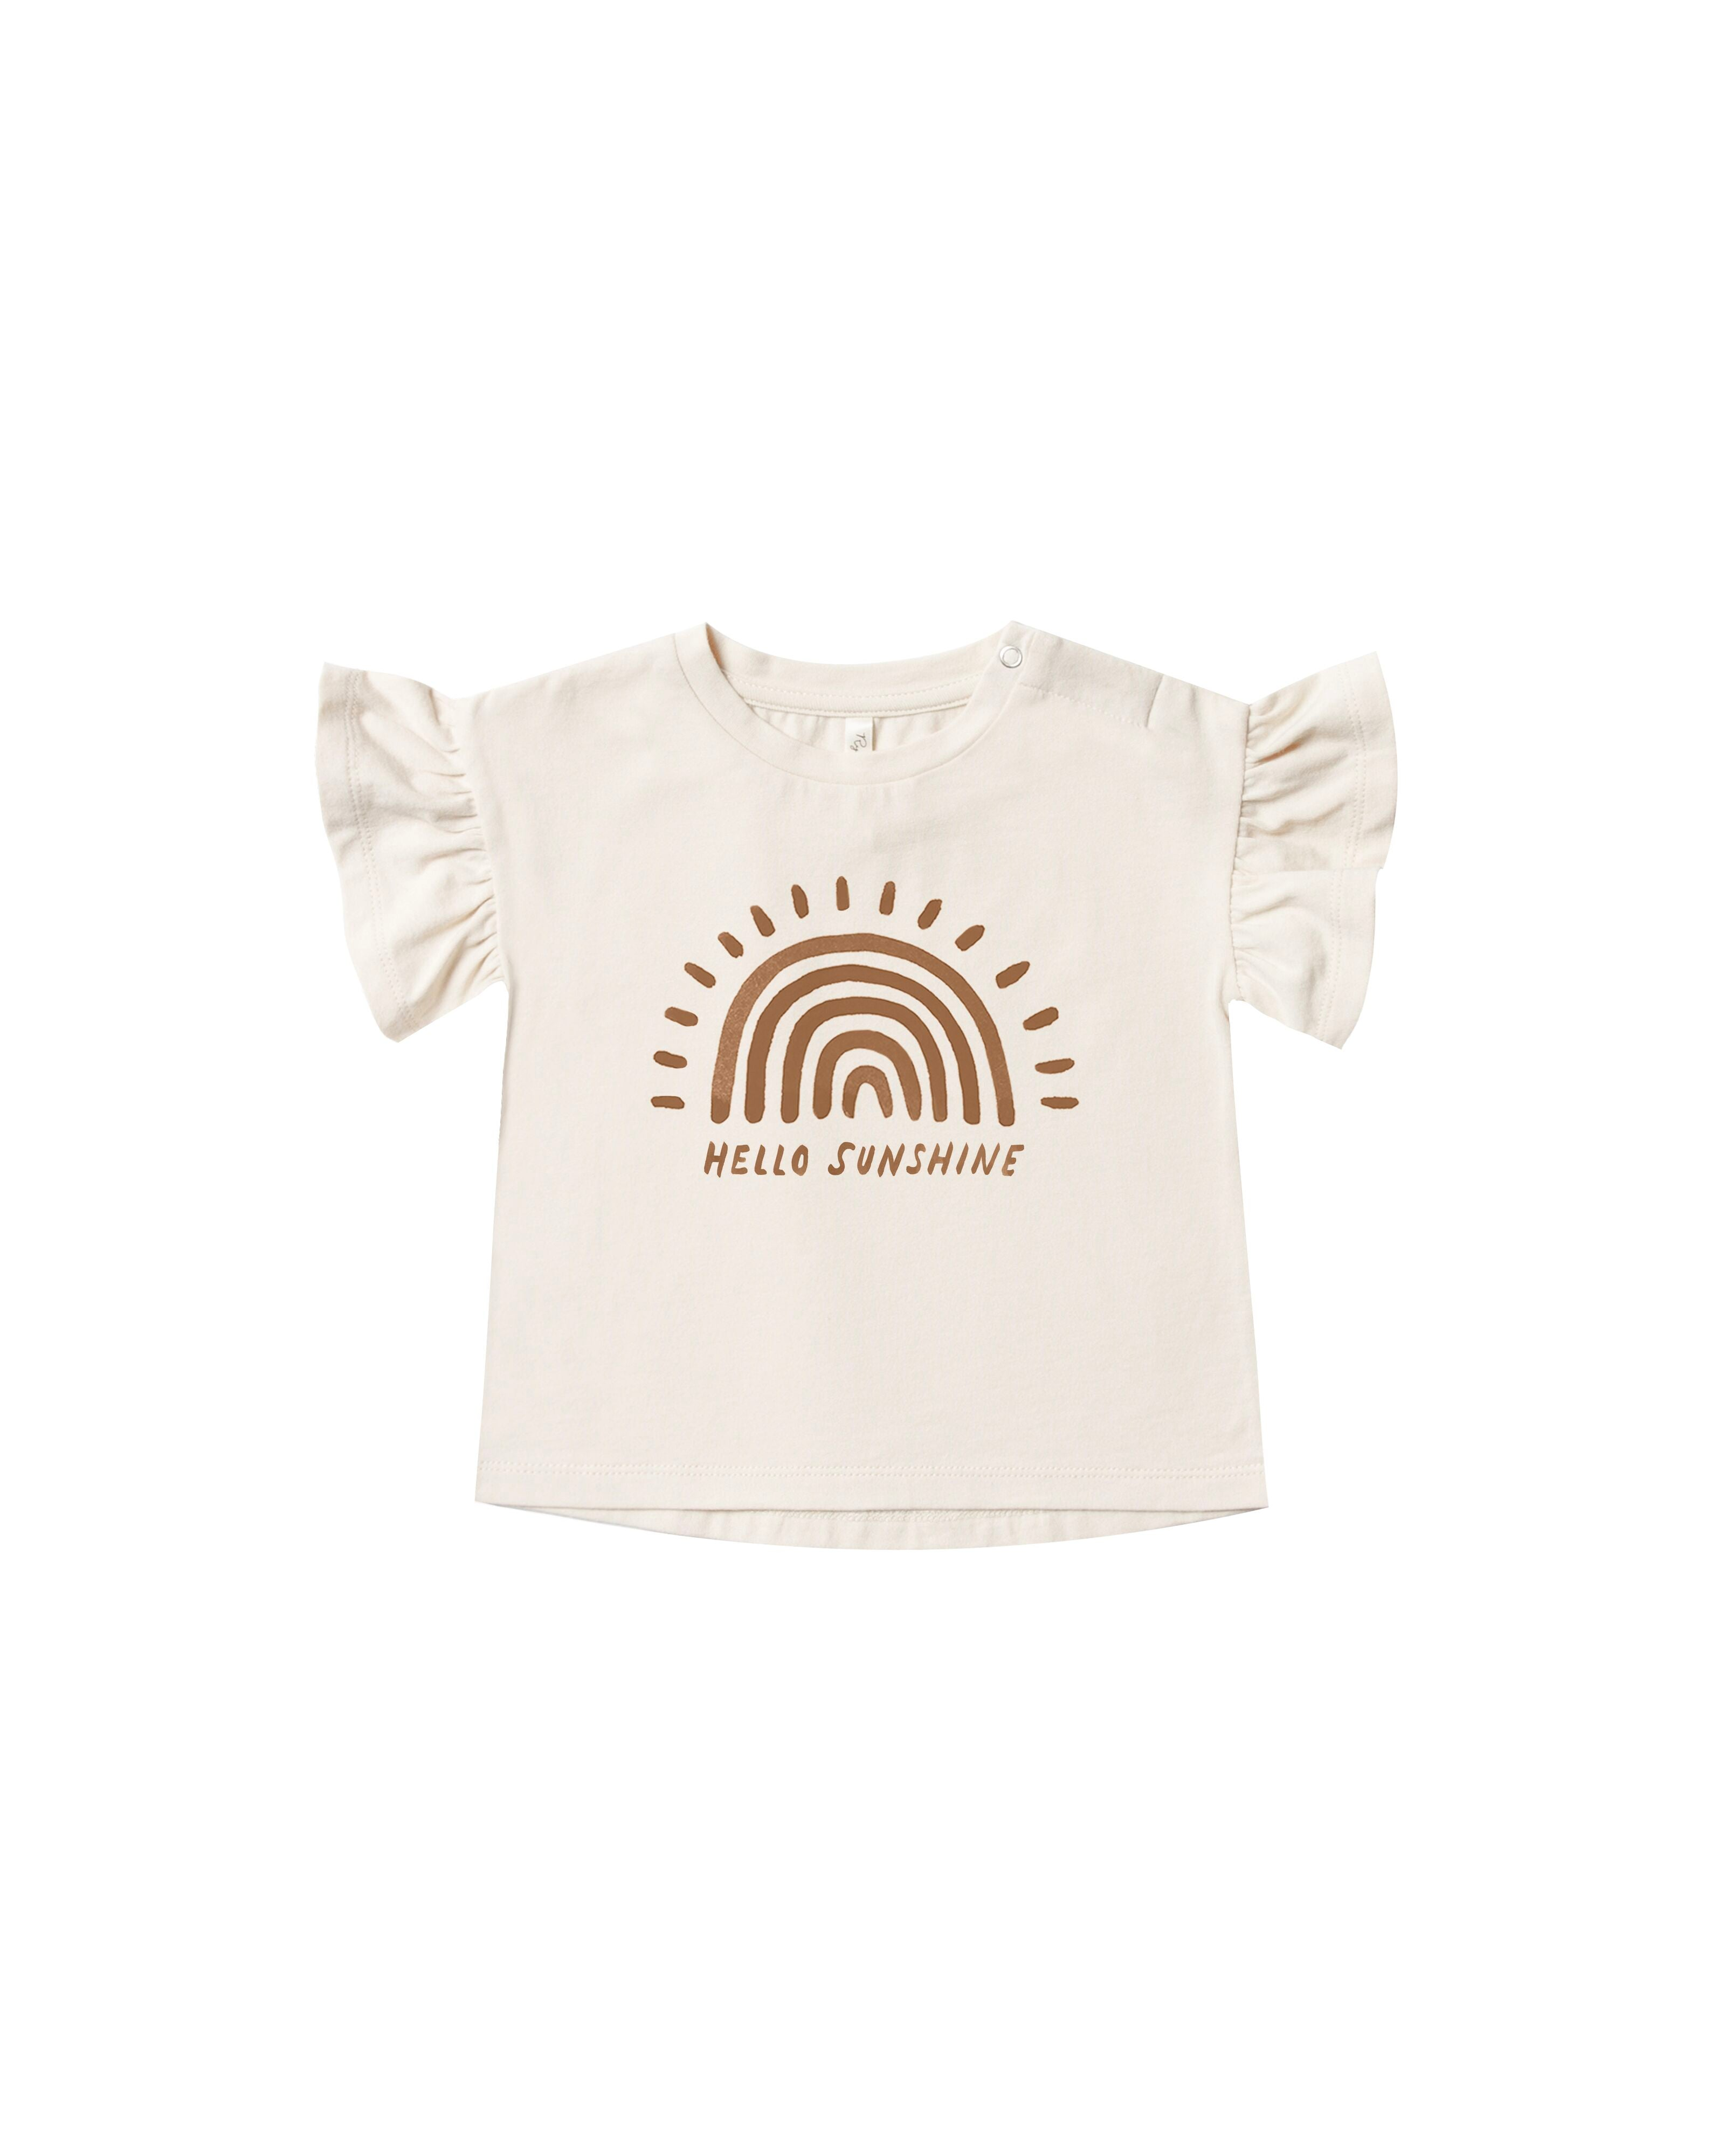 Rylee + Cru - Hometown Collection - Rainbow Sun Flutter Tee - FINAL SALE